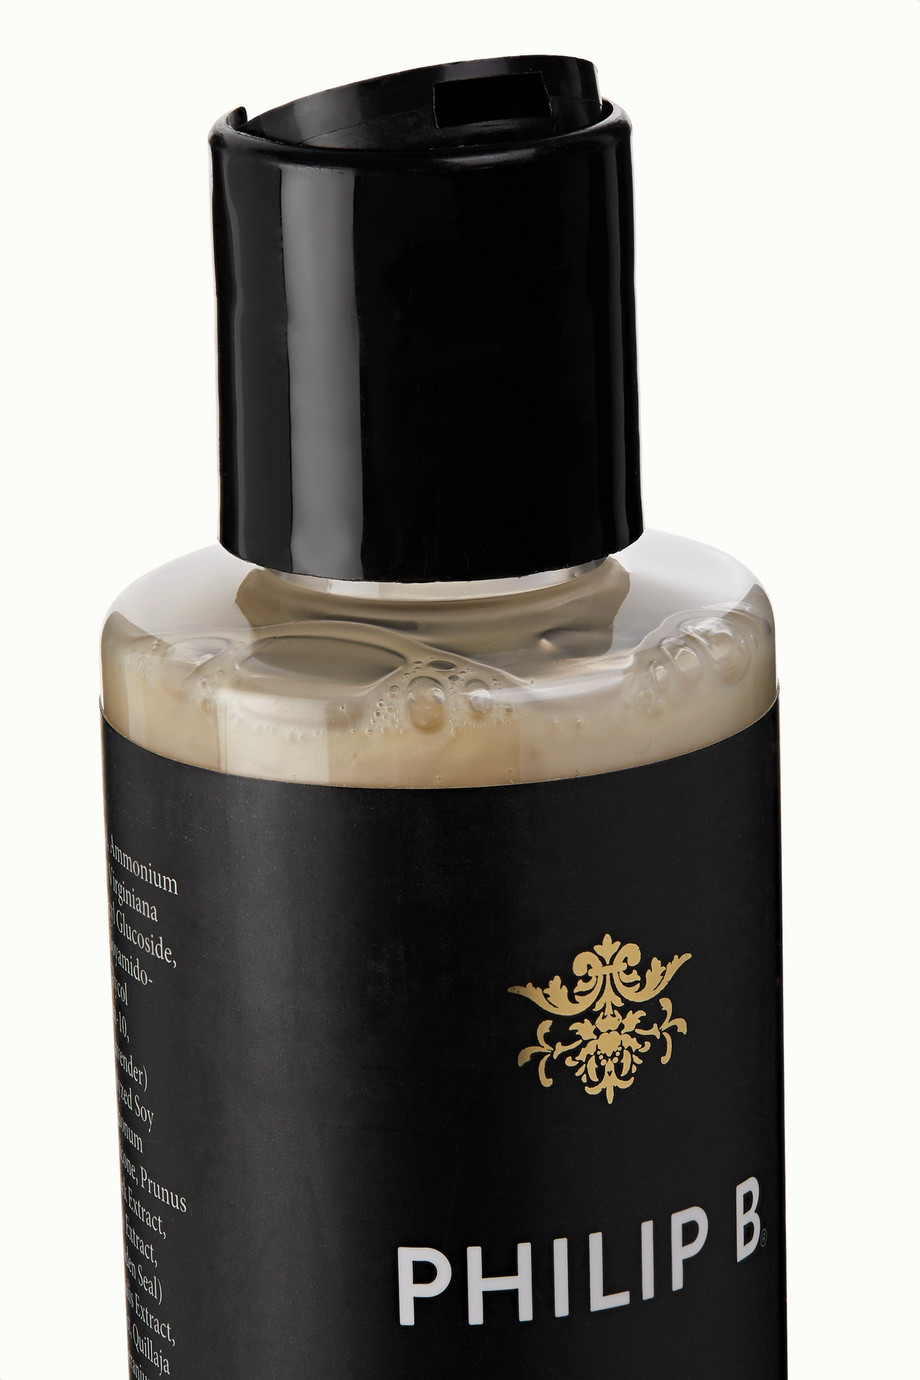 PHILIP B White Truffle Shampoo, 220ml